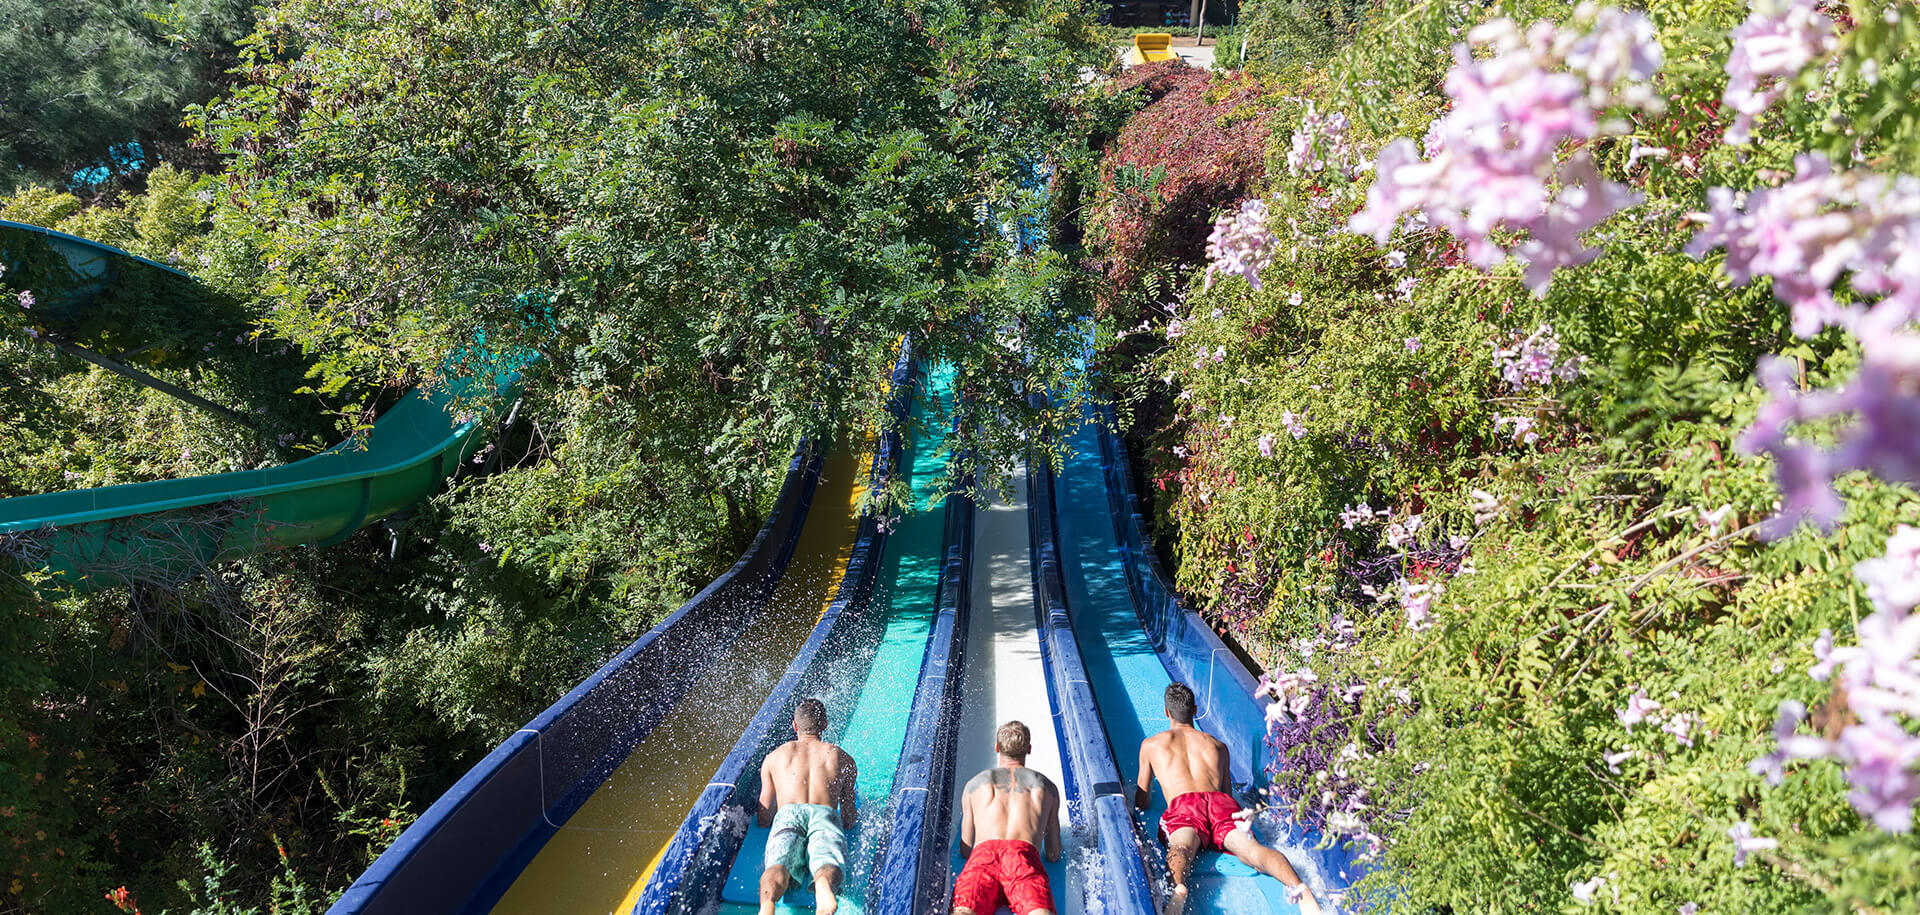 Get ready for a fun packed and adrenaline filled time at our waterpark built on a huge 25,000 m2 land, a 380-metre long adventure park to splash around in.